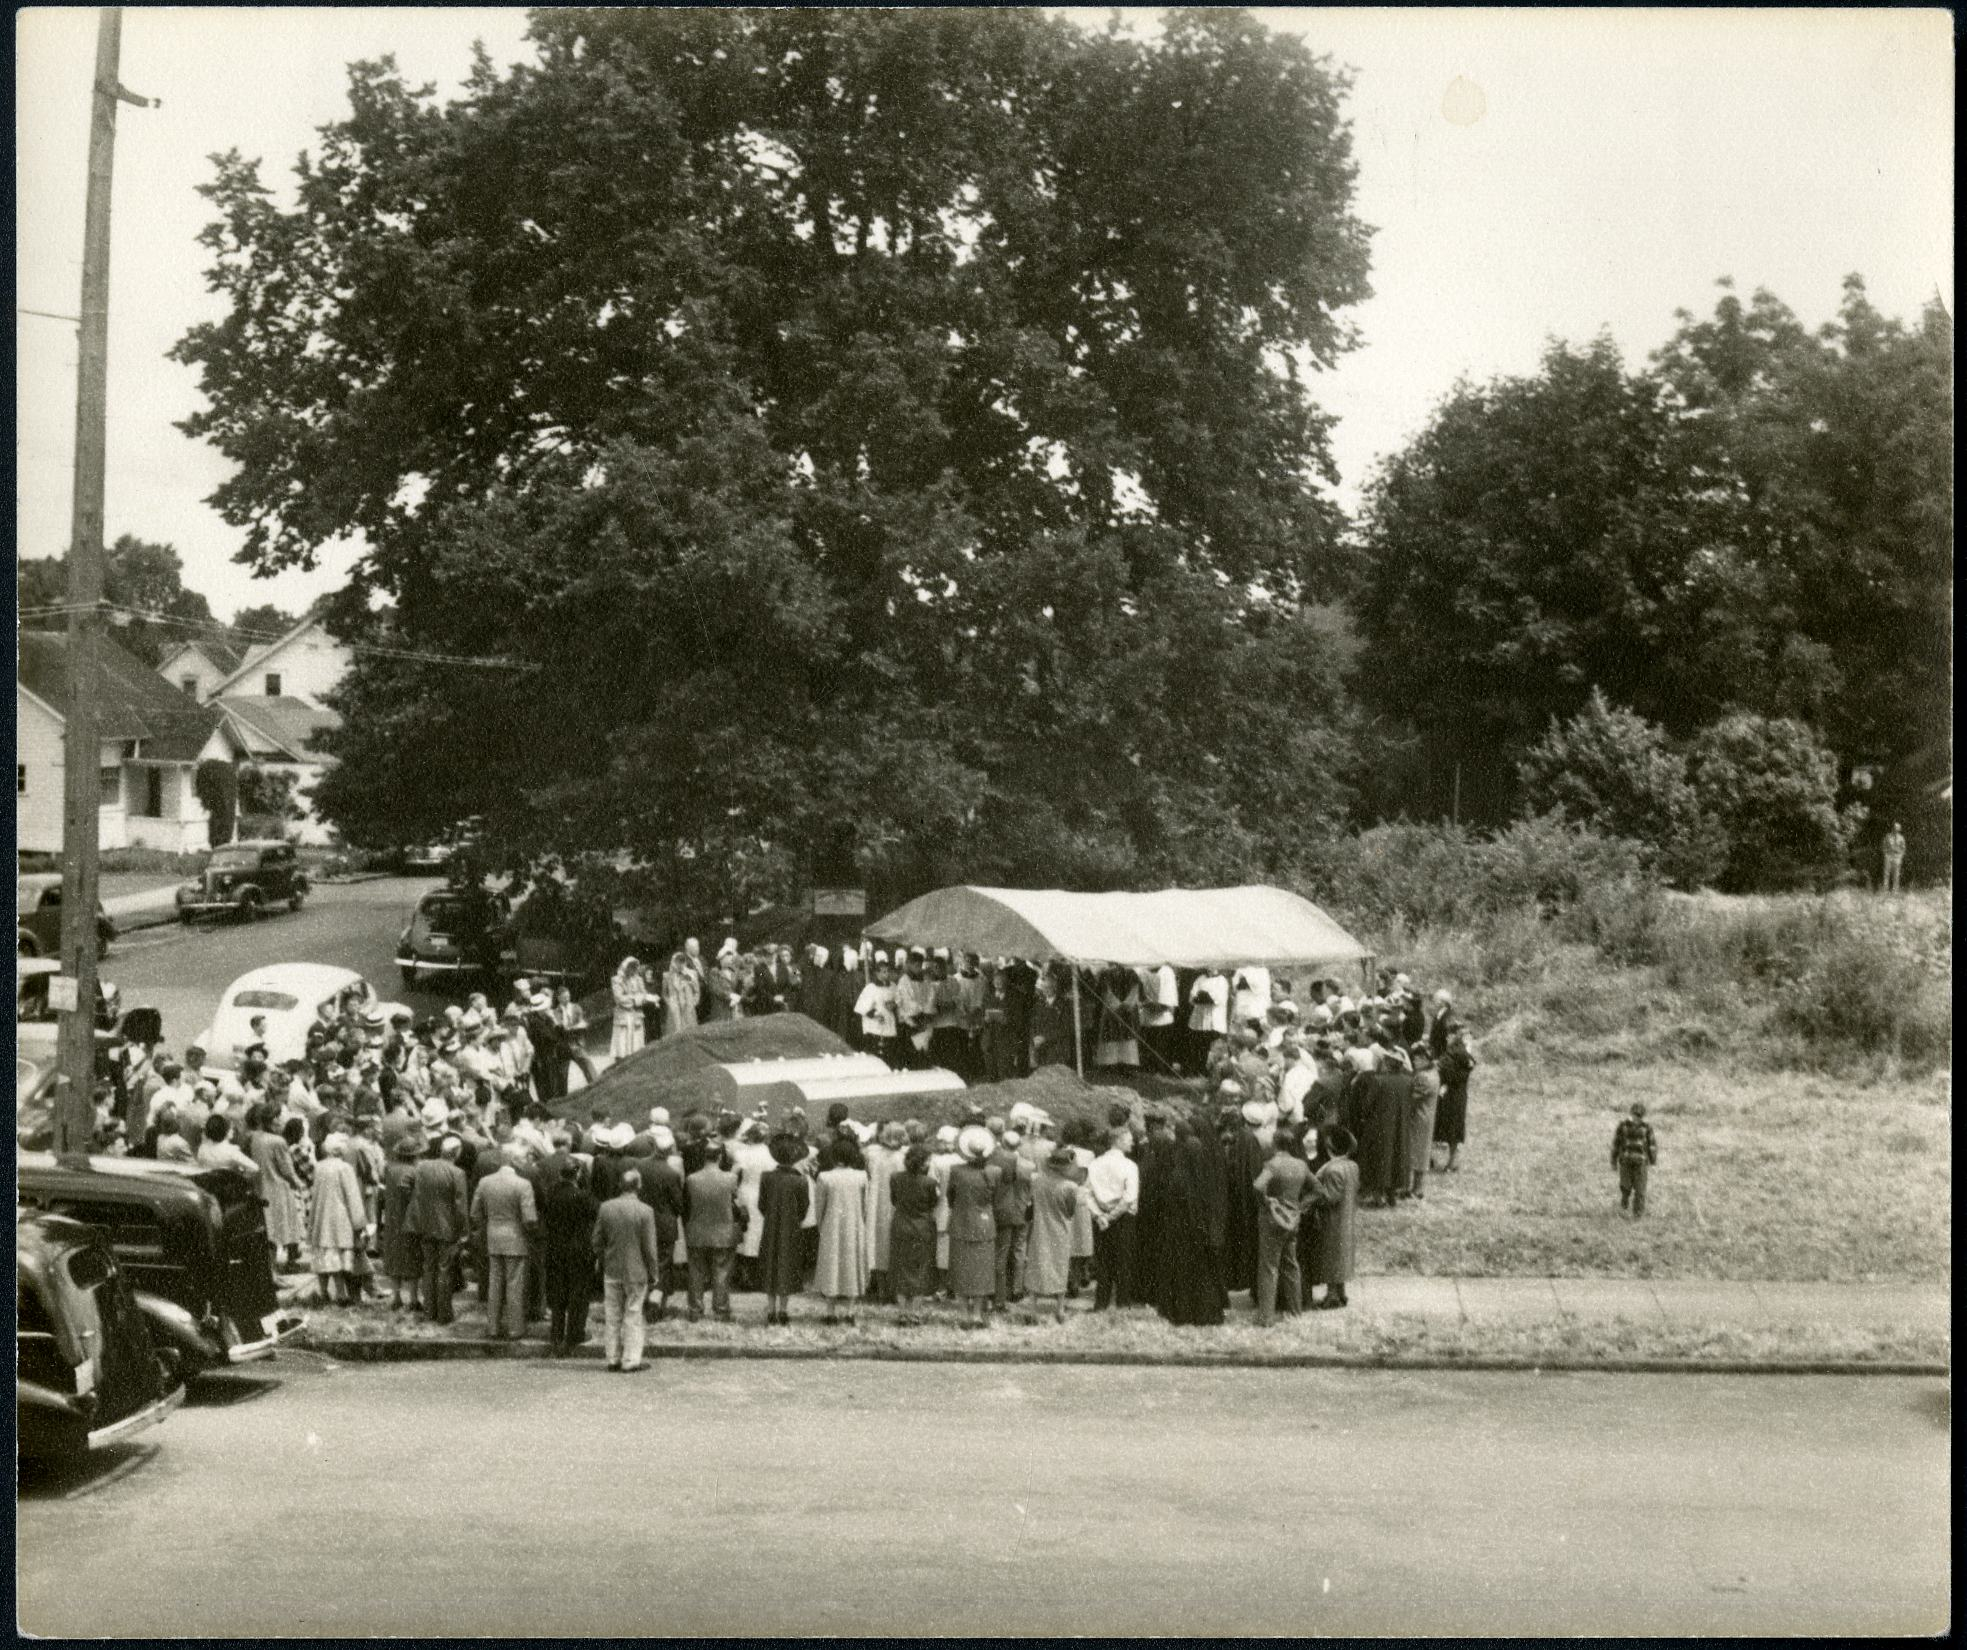 Reburial ceremony, 1948